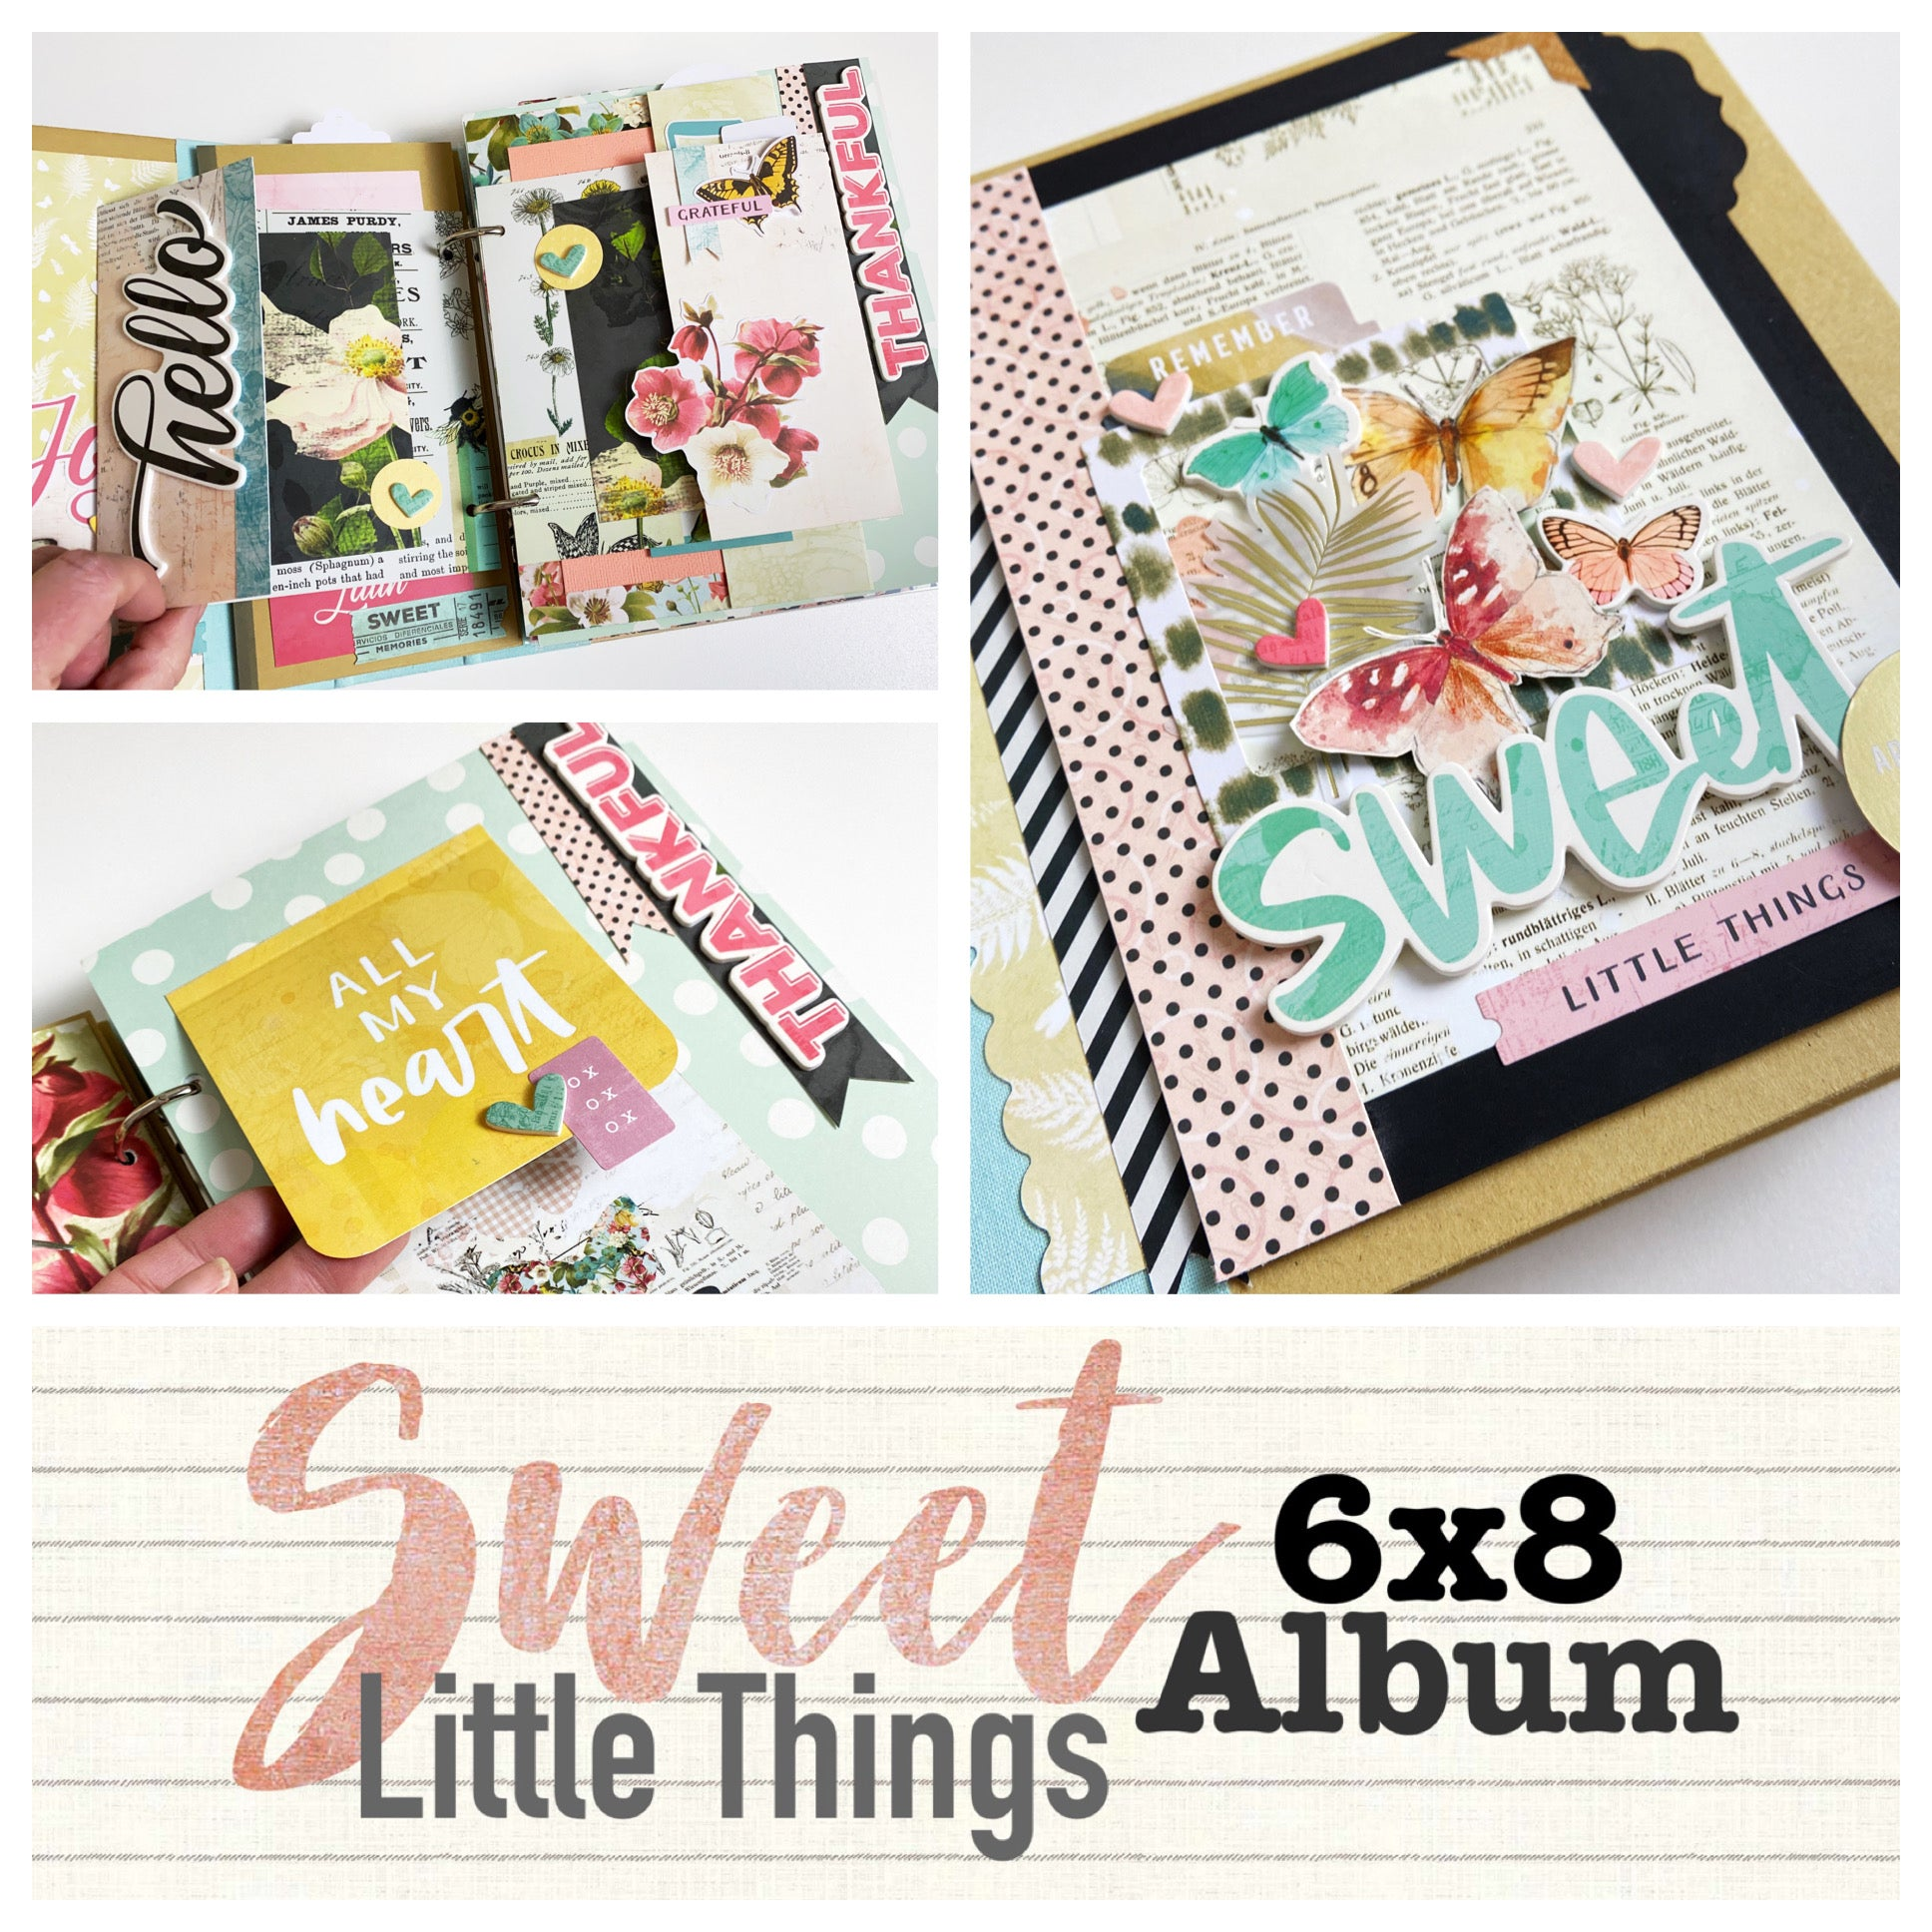 Sweet Little Things 6x8 Interactive Album